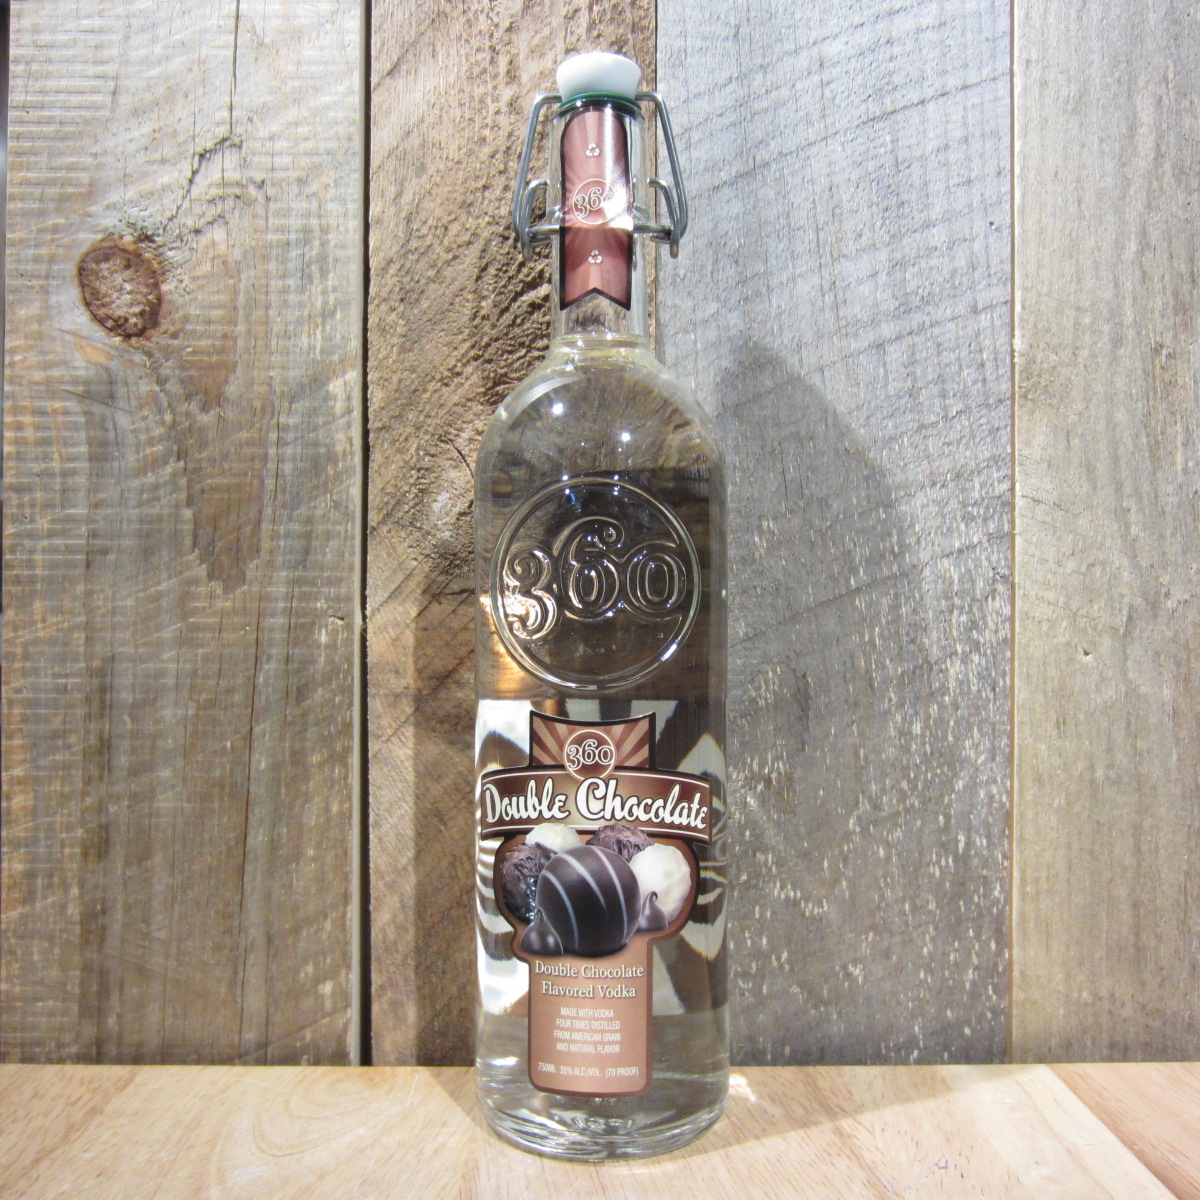 360 DOUBLE CHOCOLATE VODKA 750ML - Oak and Barrel